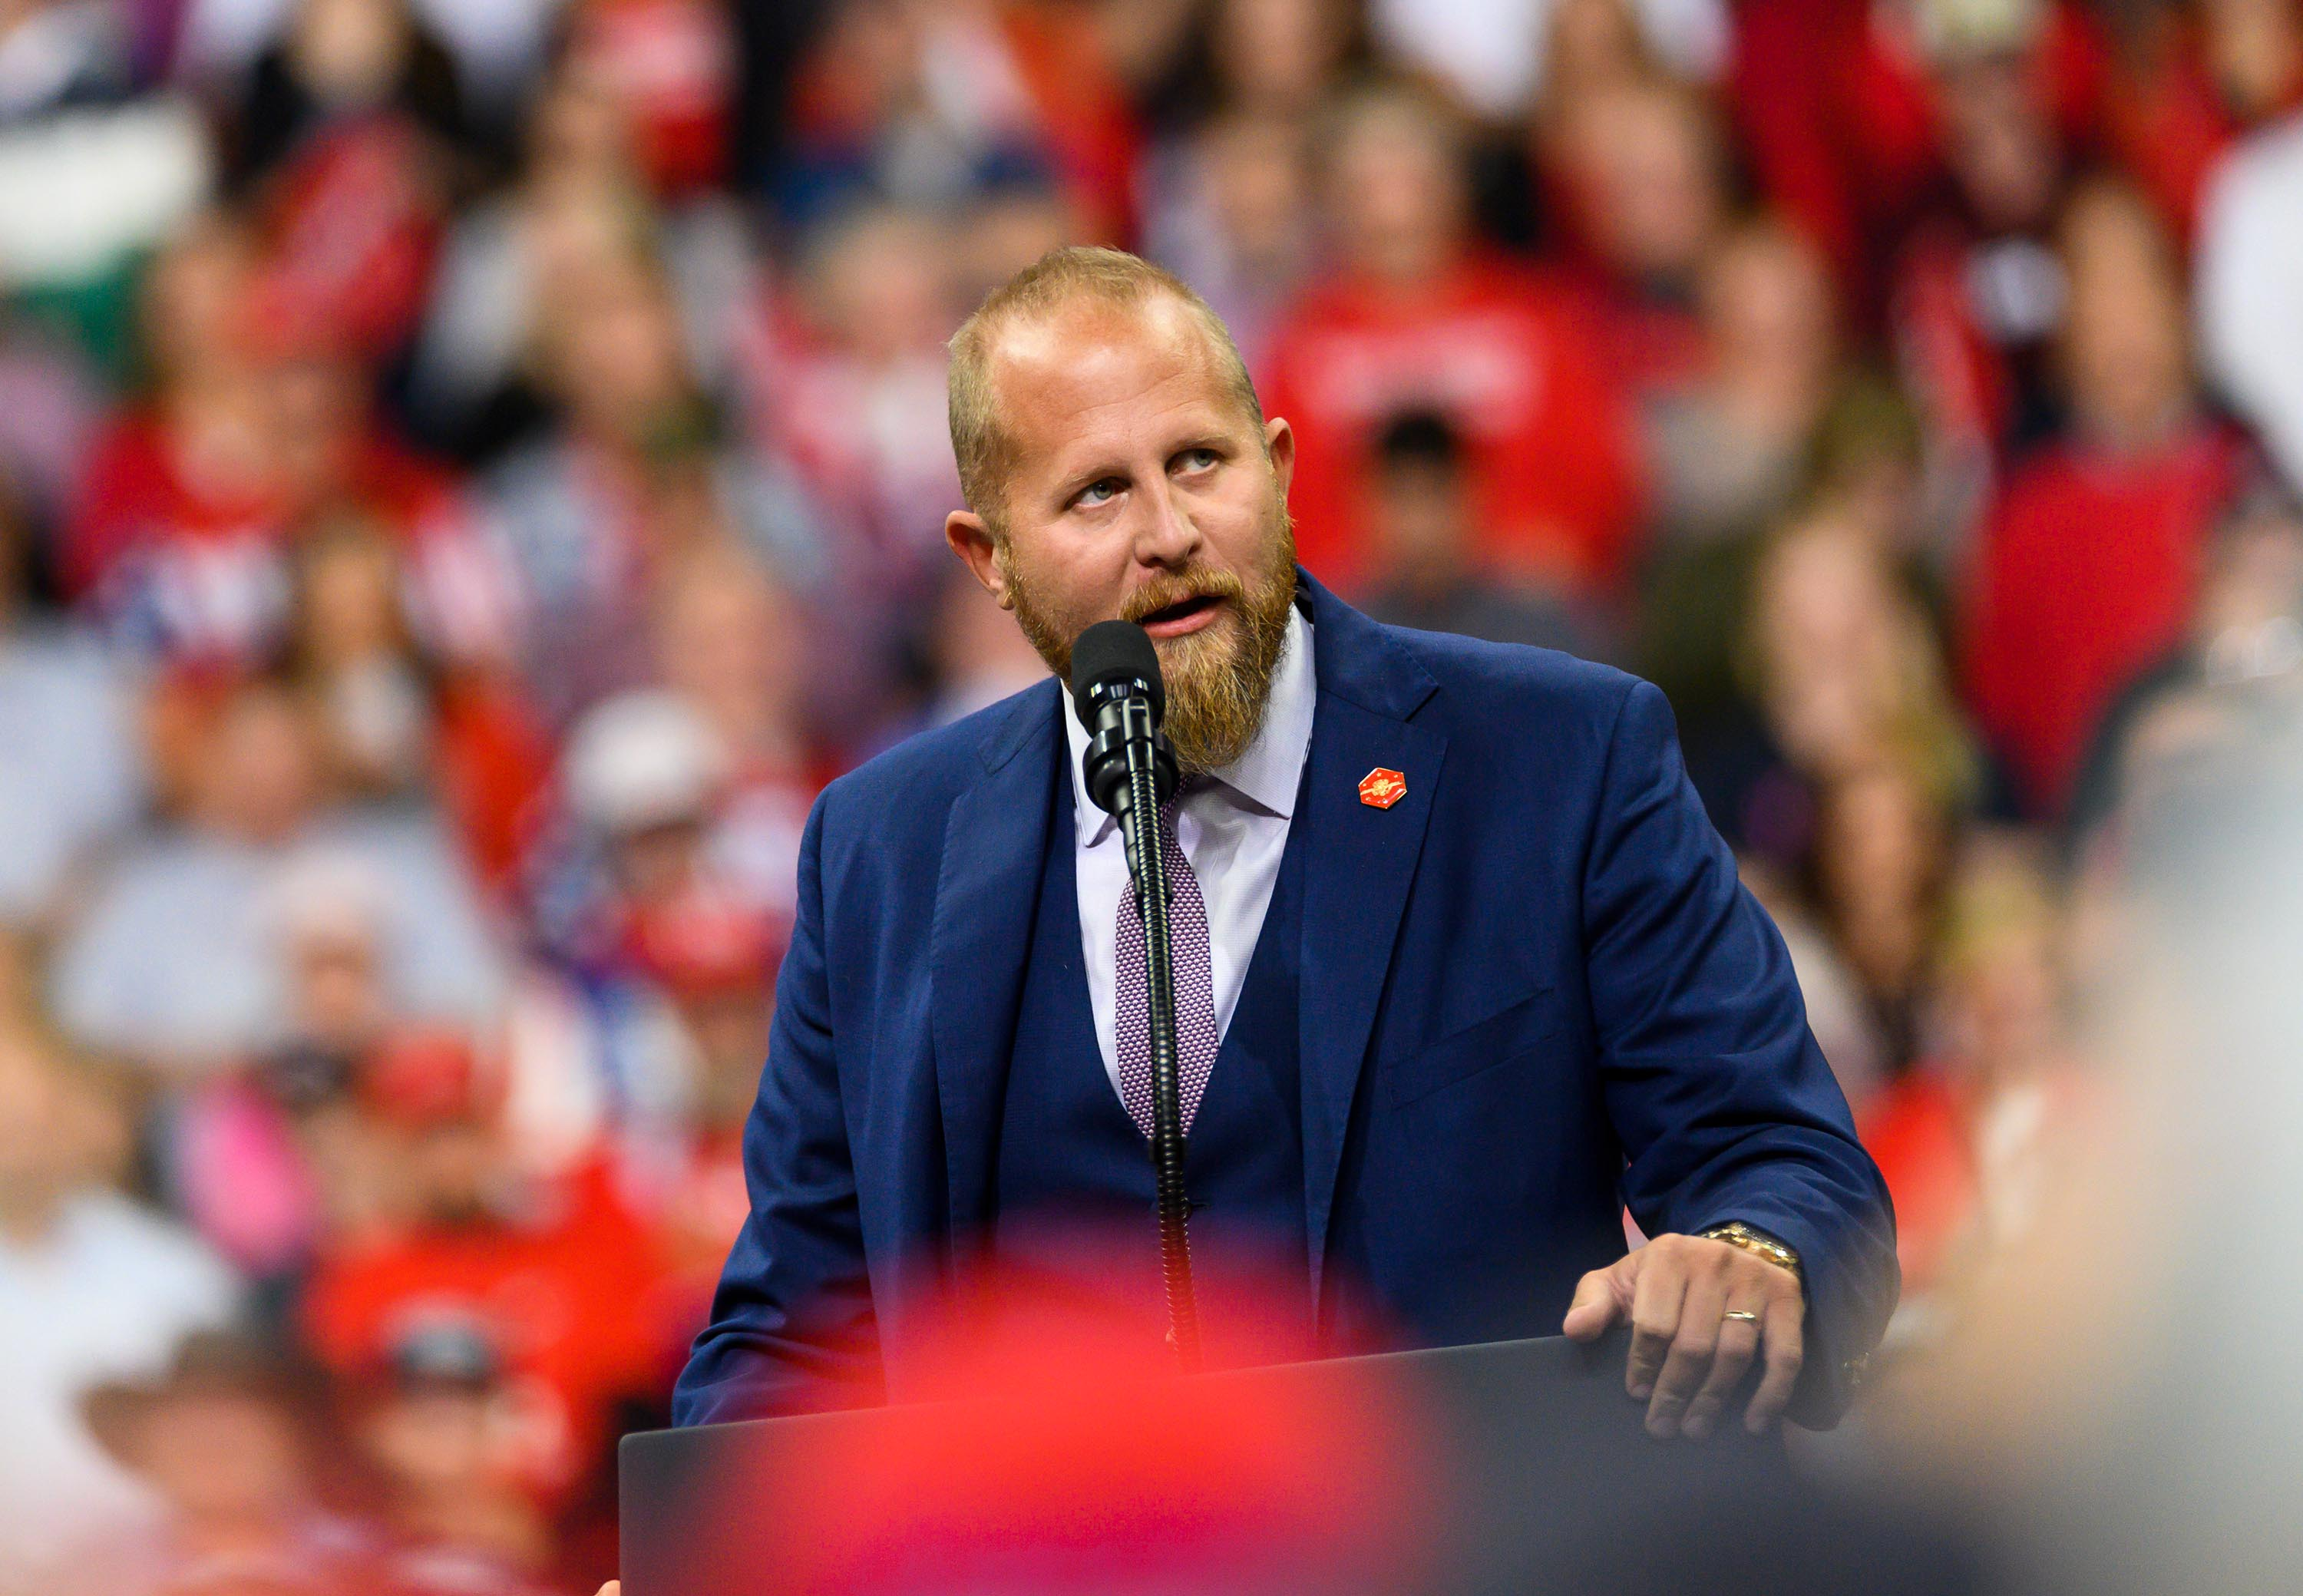 Former Trump campaign manager Brad Parscale hospitalized following reported suicide attempt